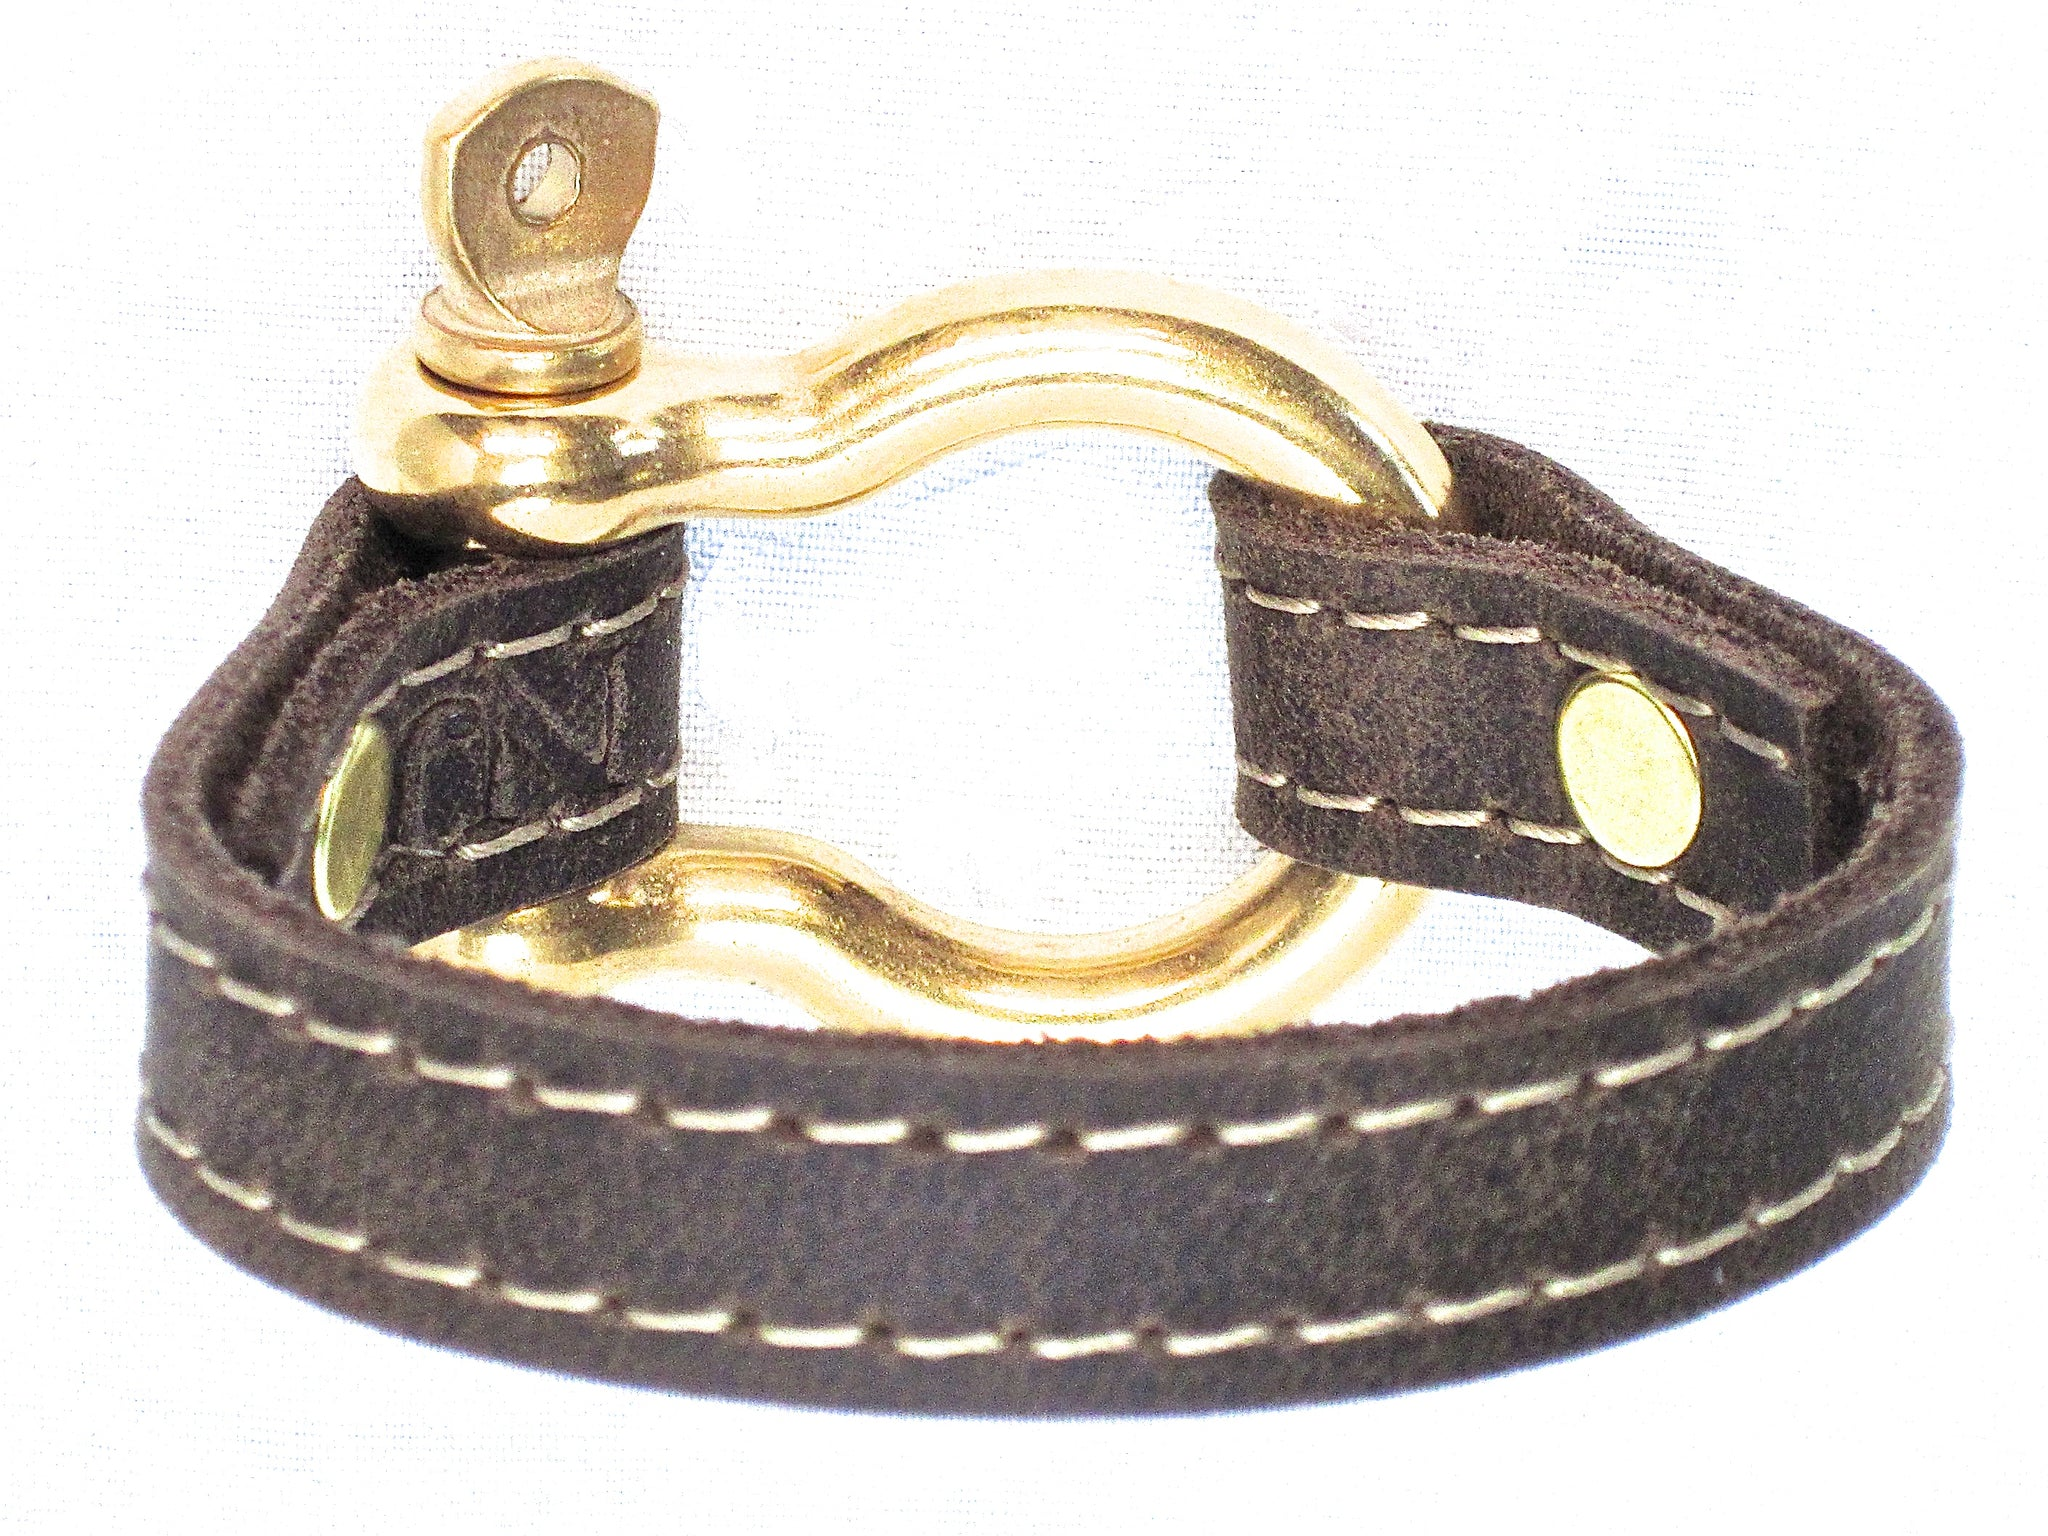 Nyet jewelry Signature Gold Bracelet Distressed Utility Leather by nyet jewelry